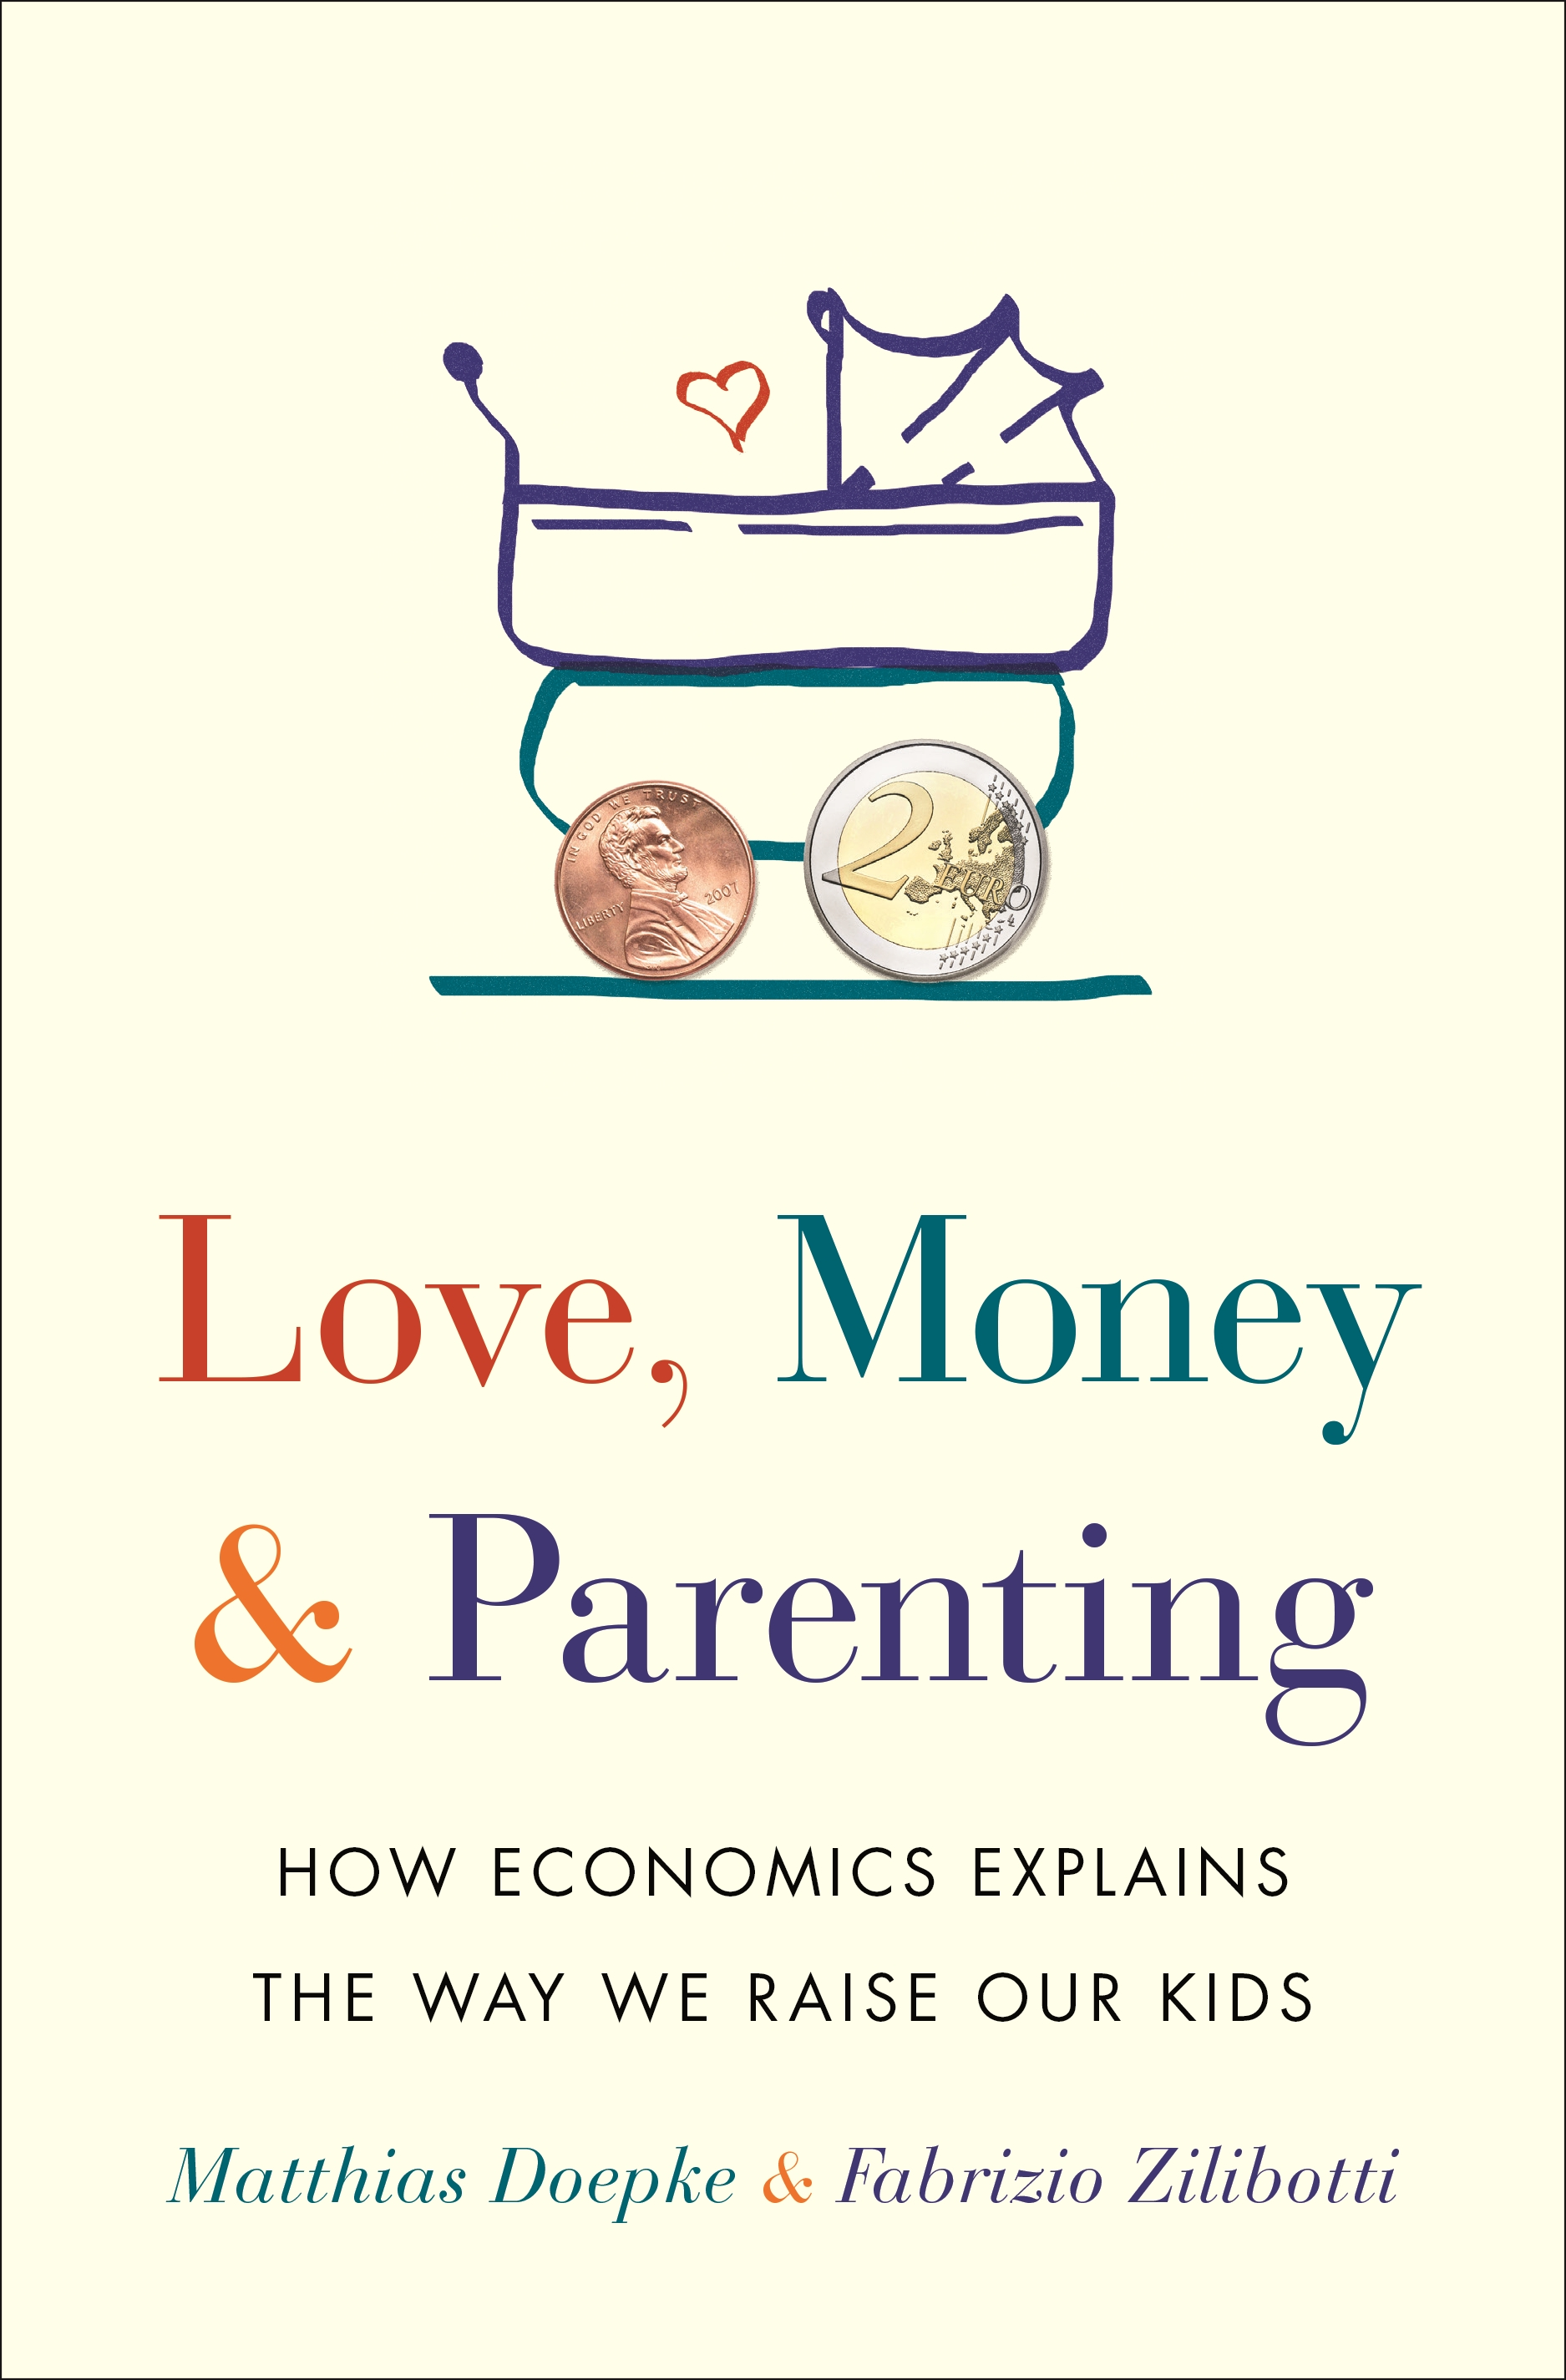 Download Ebook Love, Money, and Parenting by Matthias Doepke Pdf